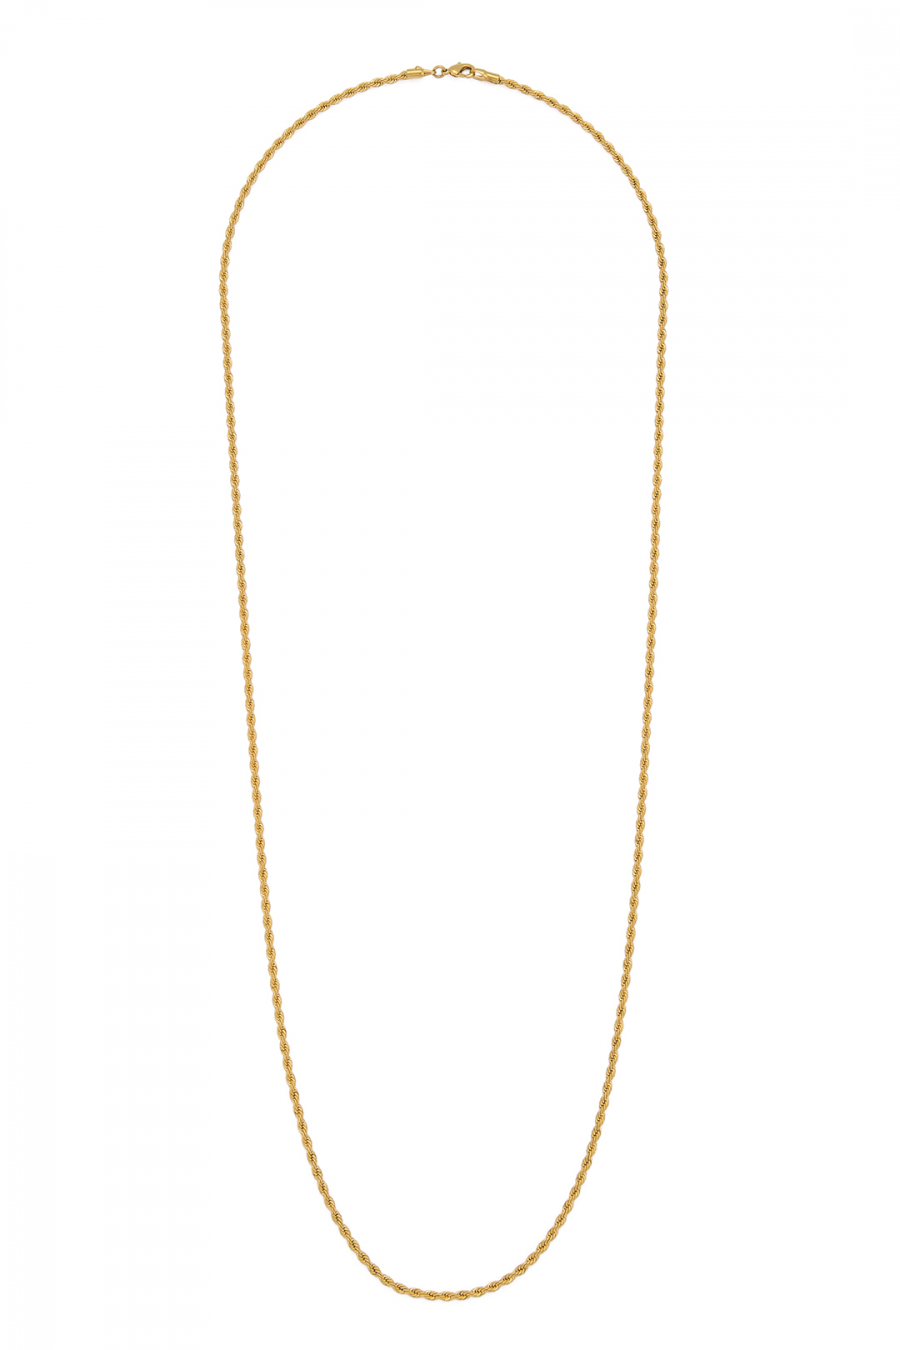 GOLD IVY NECKLACE